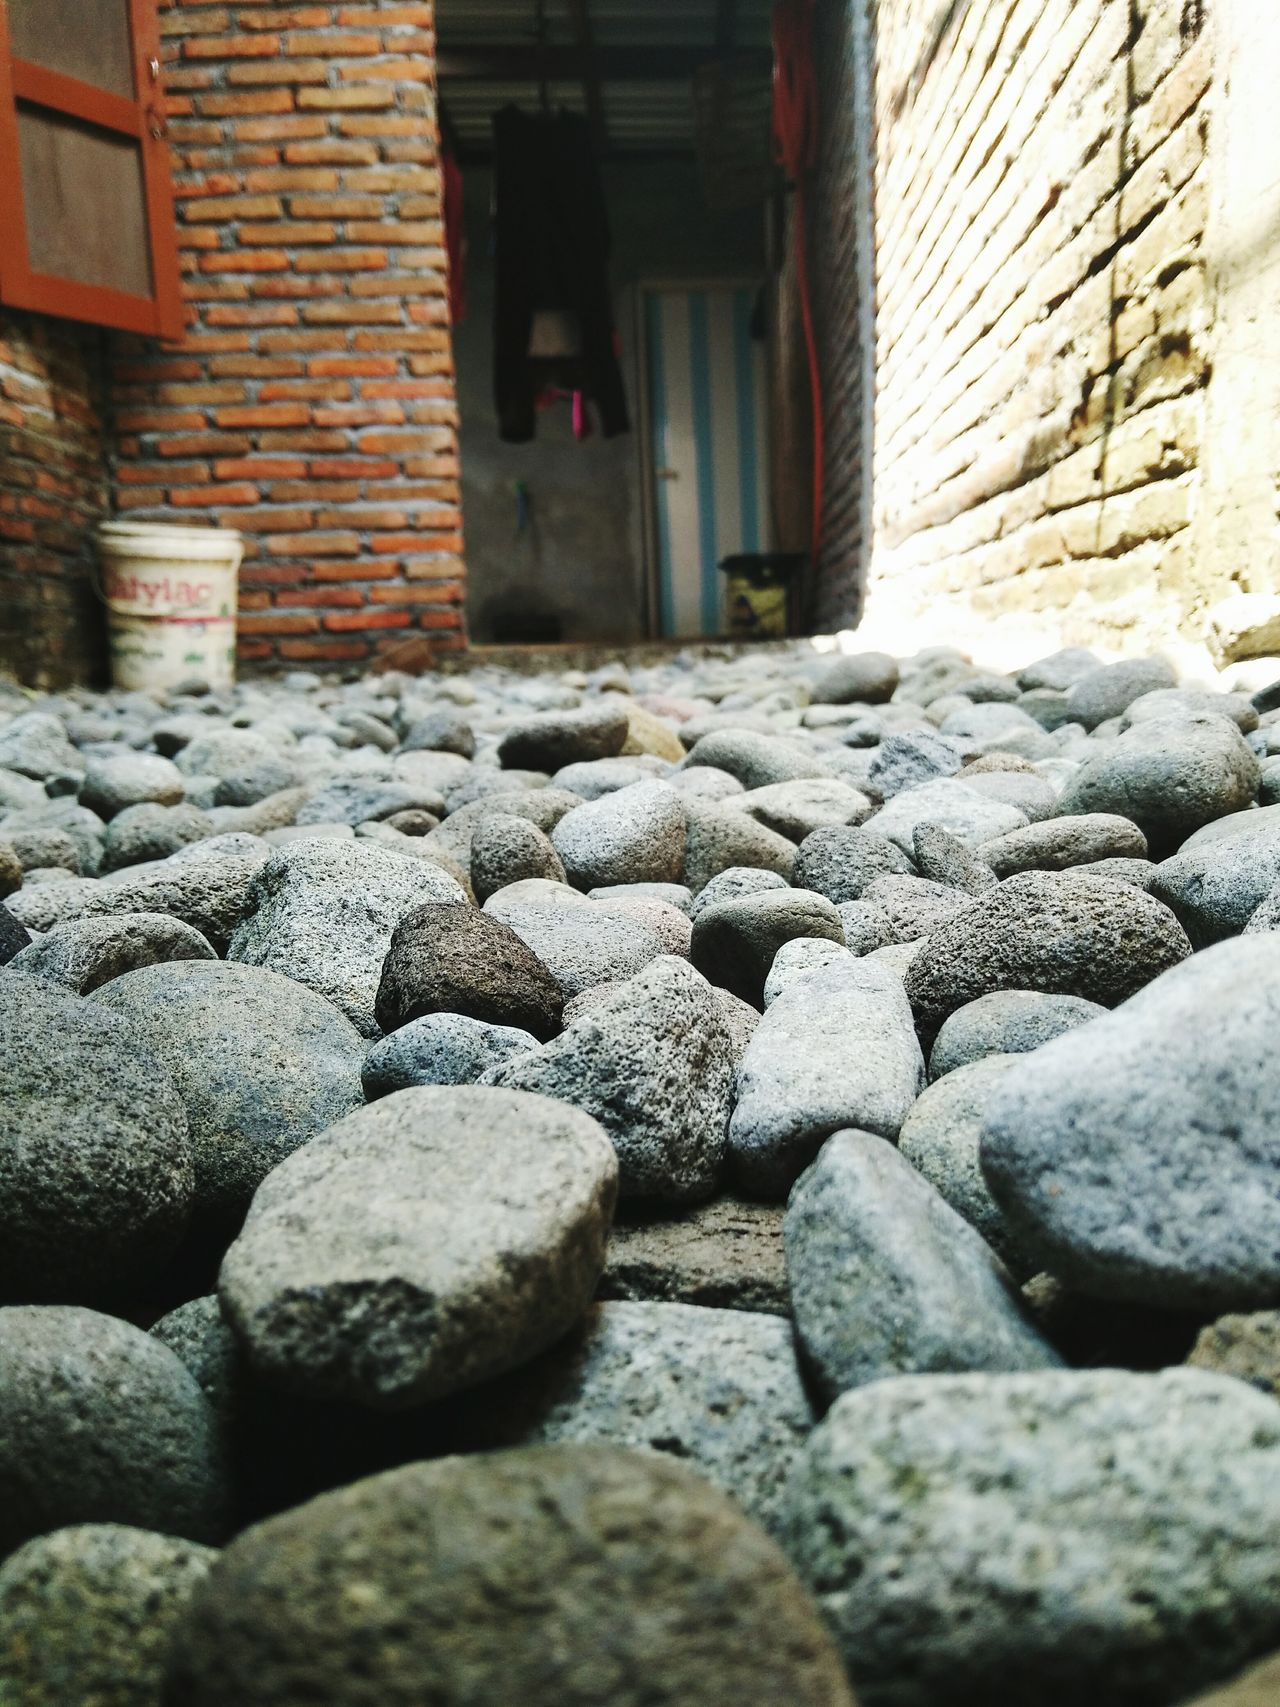 In my house :-) Photographic Memory Sweethome First Eyeem Photo Letsgoeverywhere Amateurphotographer  Student Art Let Go Newbie ✌ Oppo Photographer Getting Inspired Photography Indonesia_allshots Indonesia_photography Indonesian Photographers Collection Stone - Object Stones & Water Stone Stone Material Akucintaprodukindonesia Kameraponsel Kameraman Kamerahp Kamerahpsaya Kamerahpgue Kamerasaku